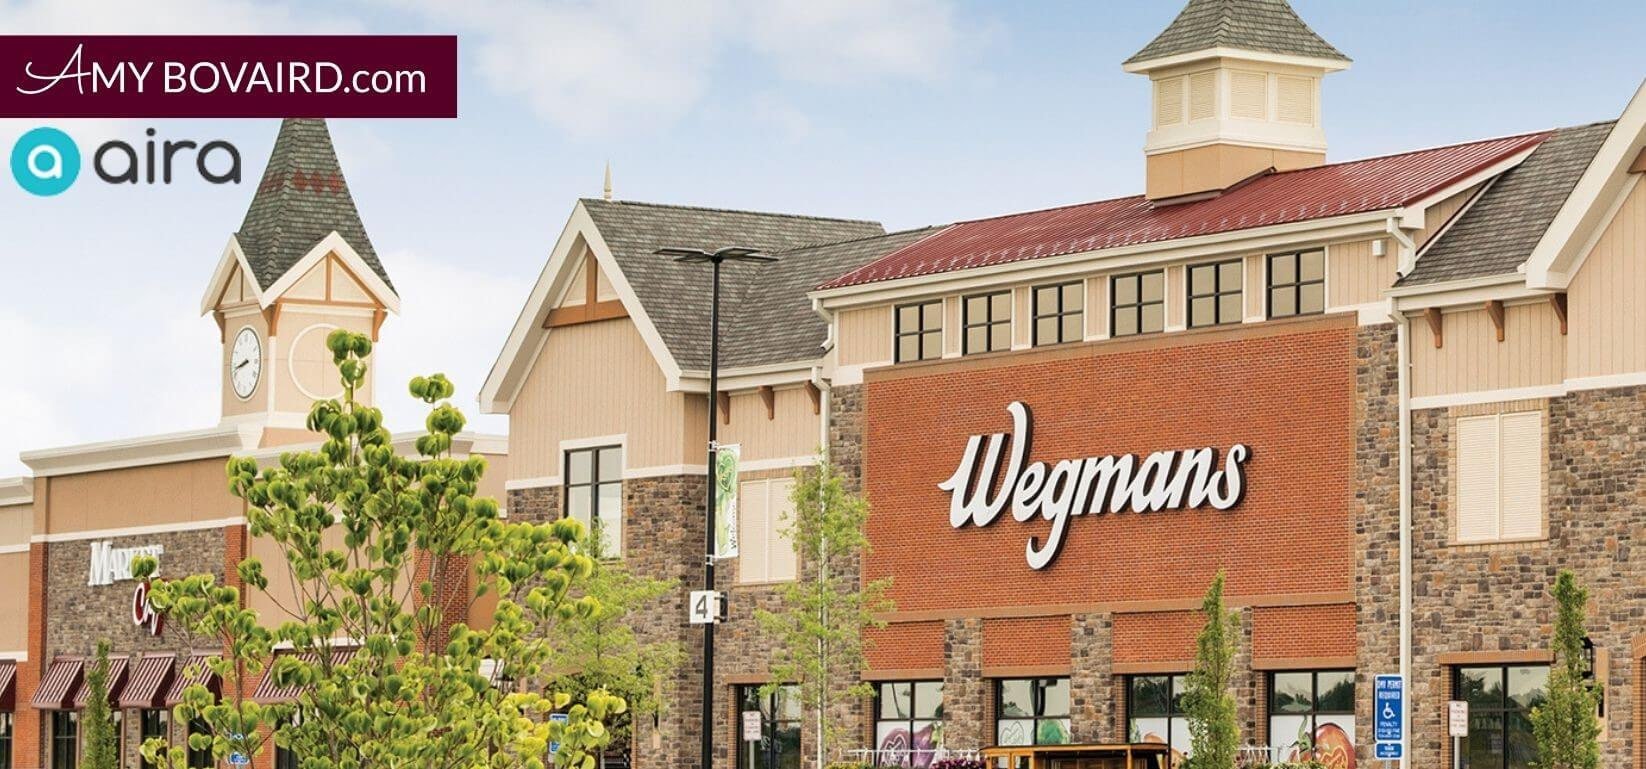 picture of Wegmans grocery store